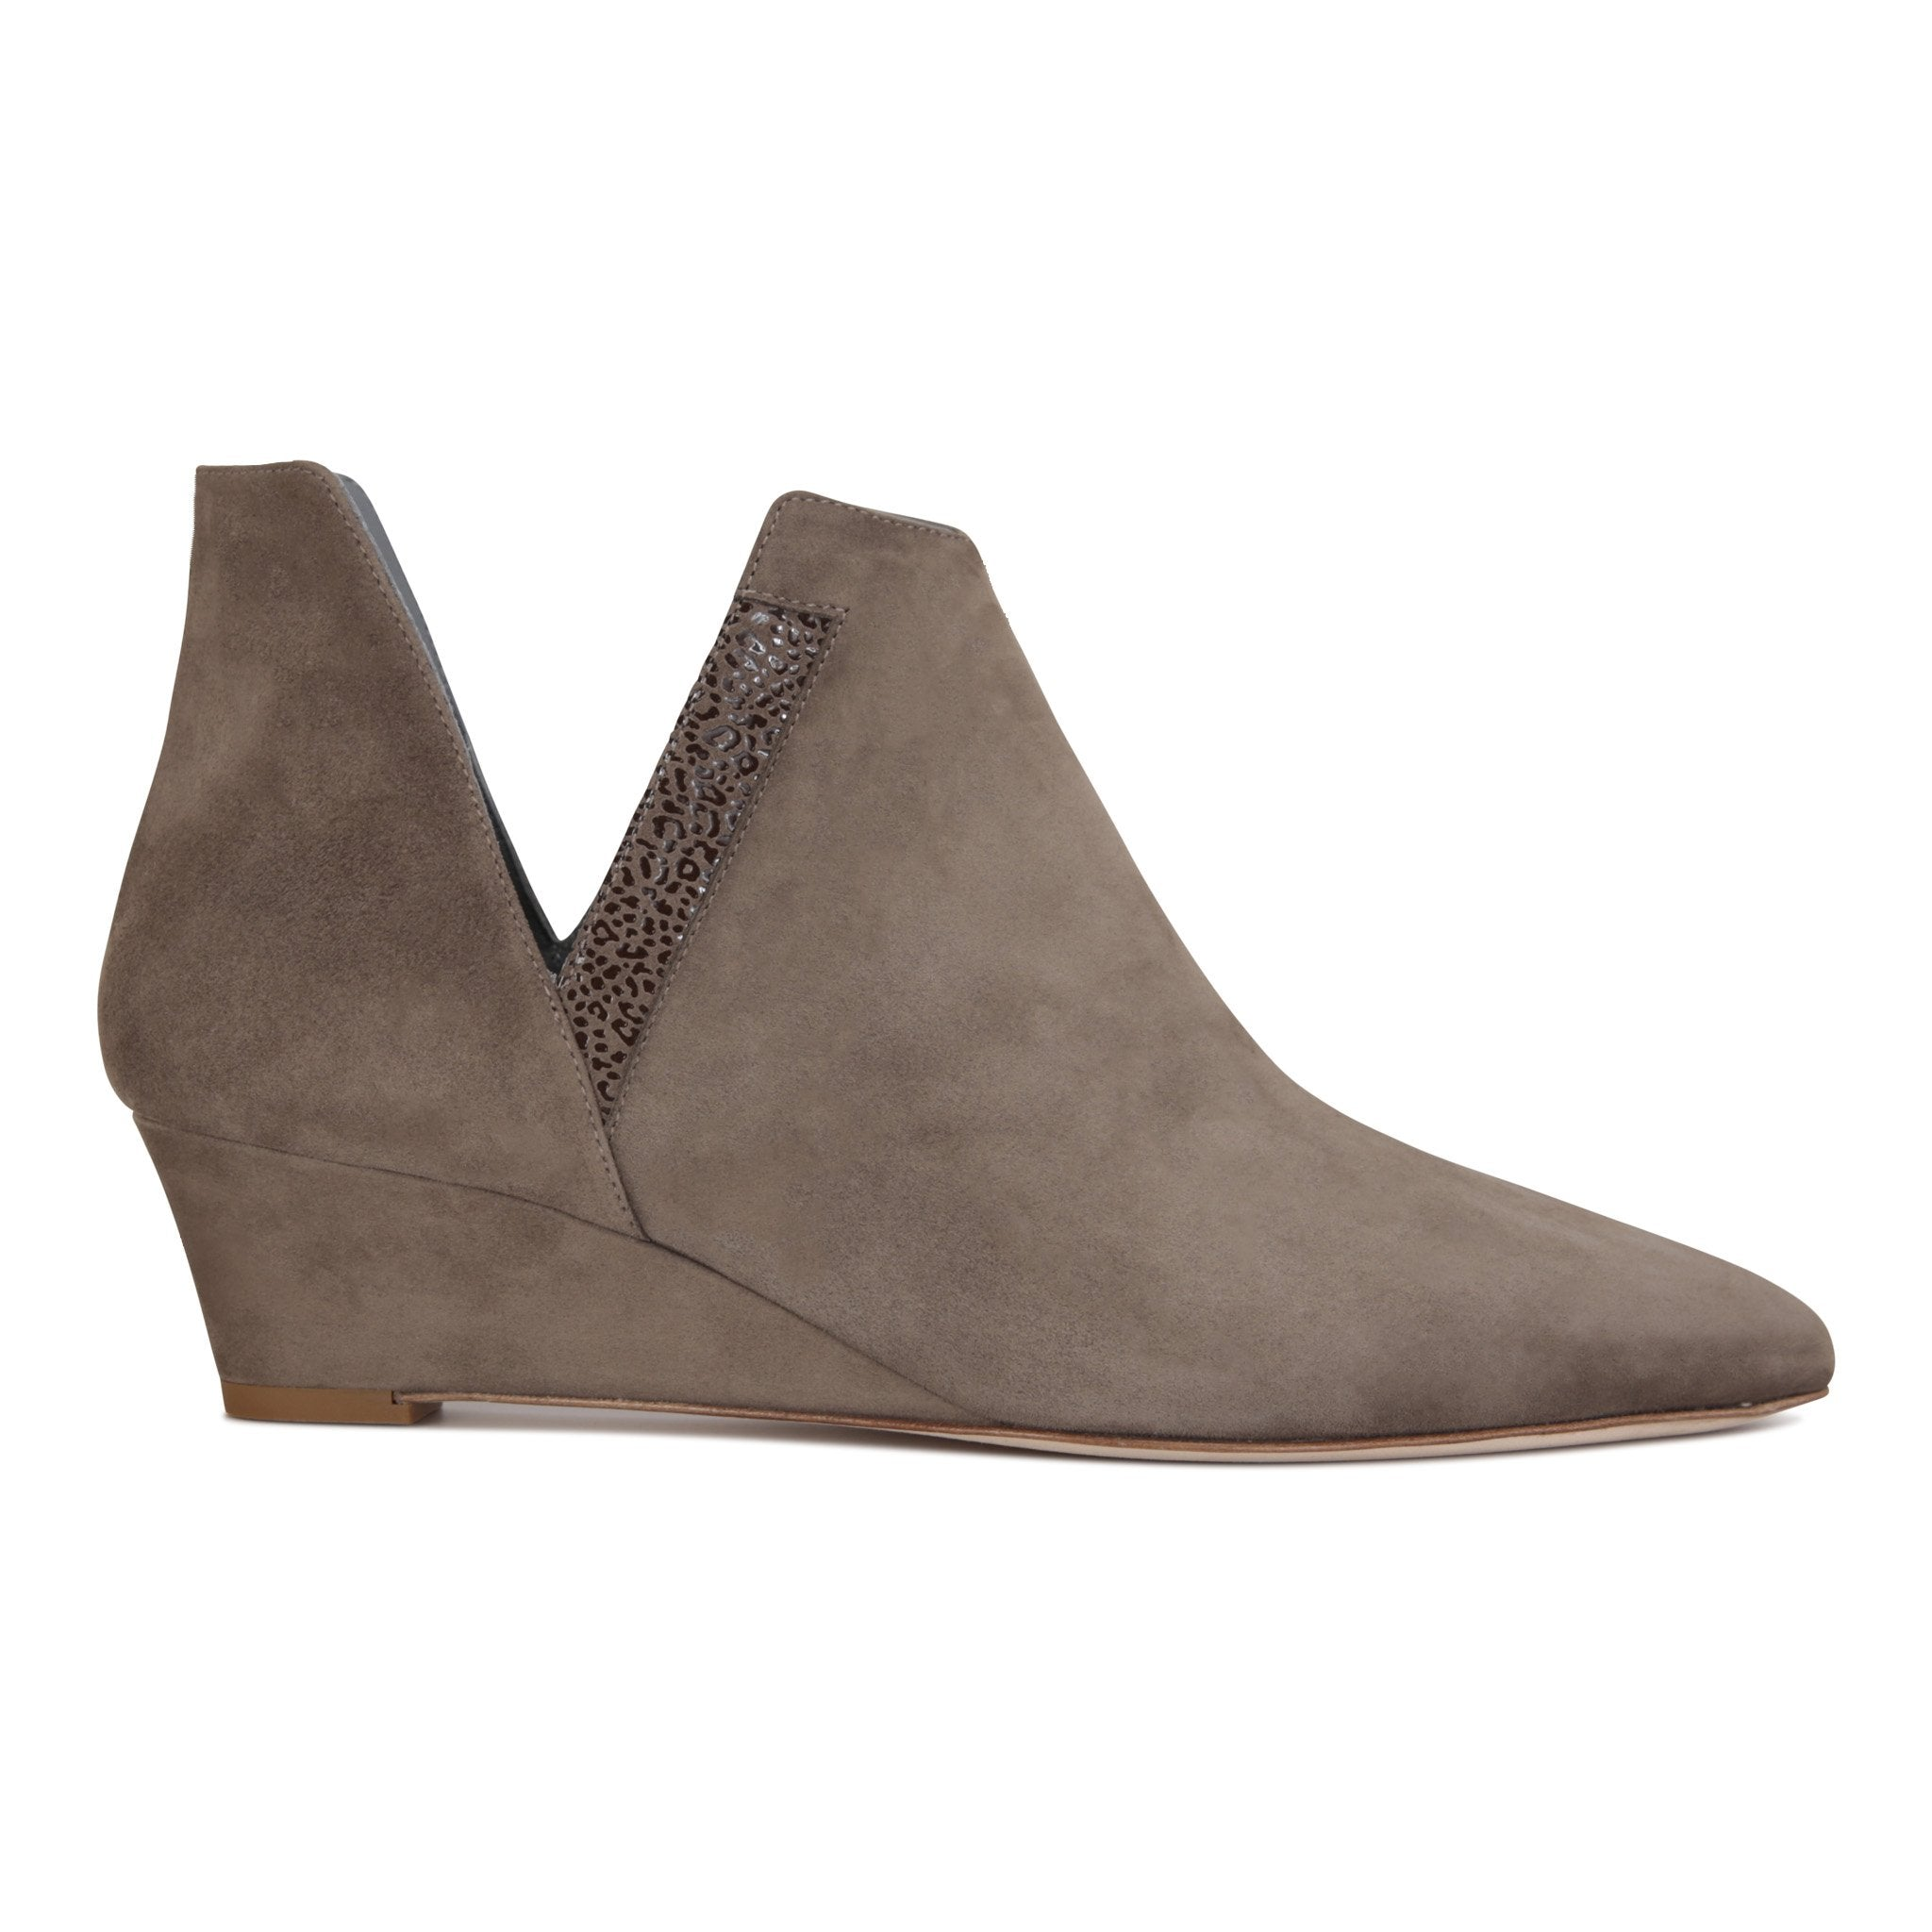 SYRENE - Velukid + Savannah Taupe, VIAJIYU - Women's Hand Made Sustainable Luxury Shoes. Made in Italy. Made to Order.